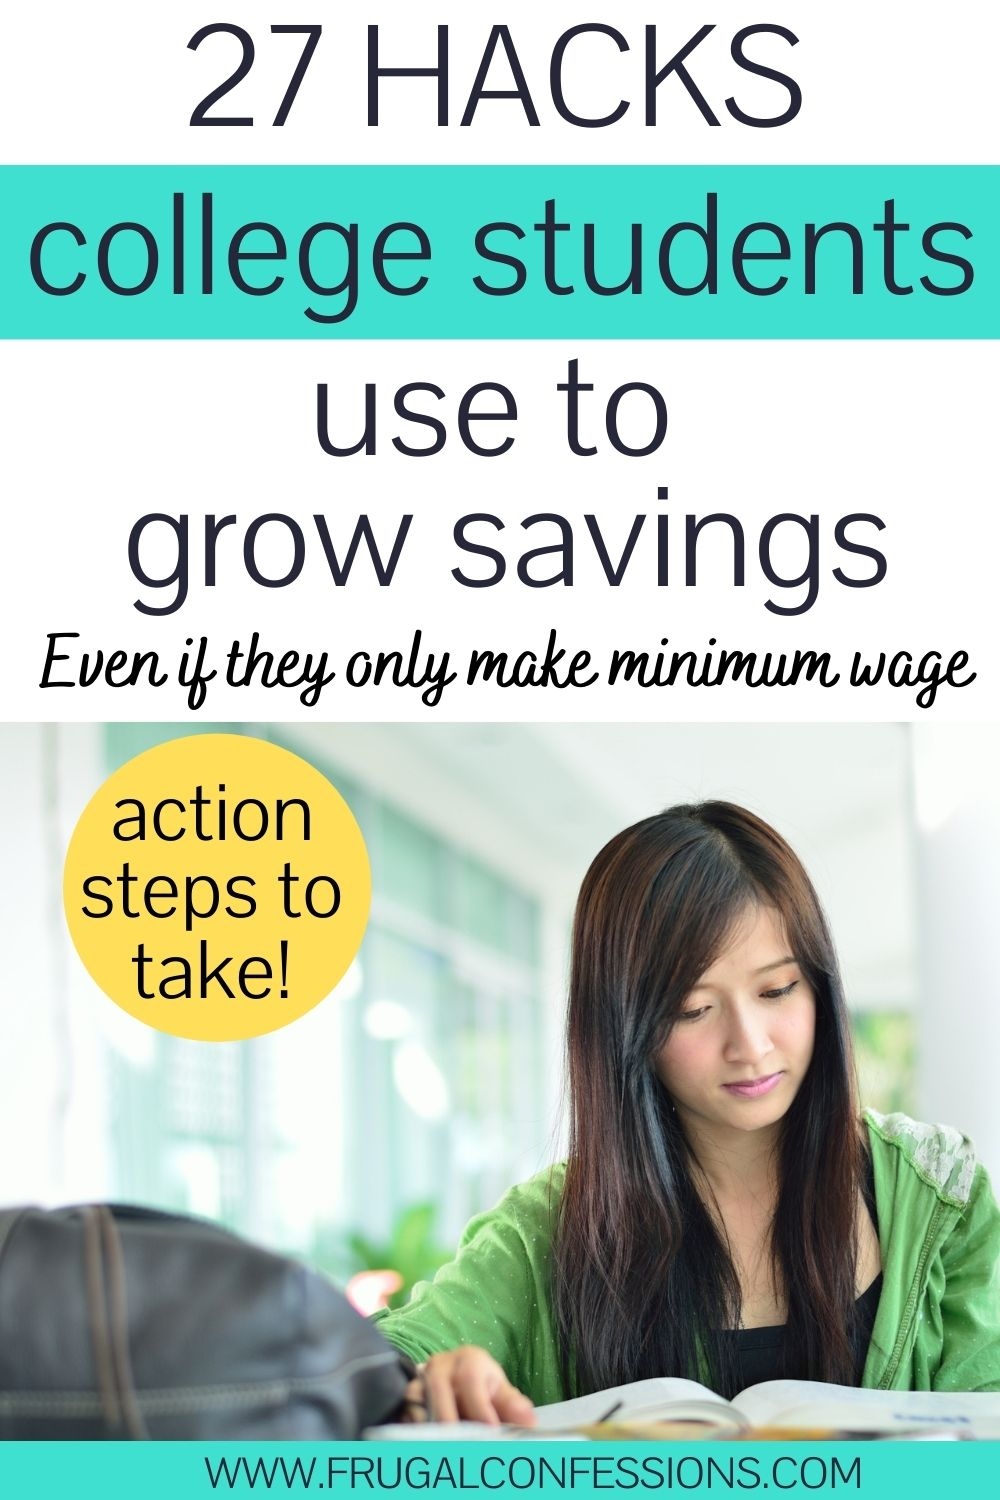 """woman college student at desk studying, text overlay """"27 hacks college students use to grow savings"""""""